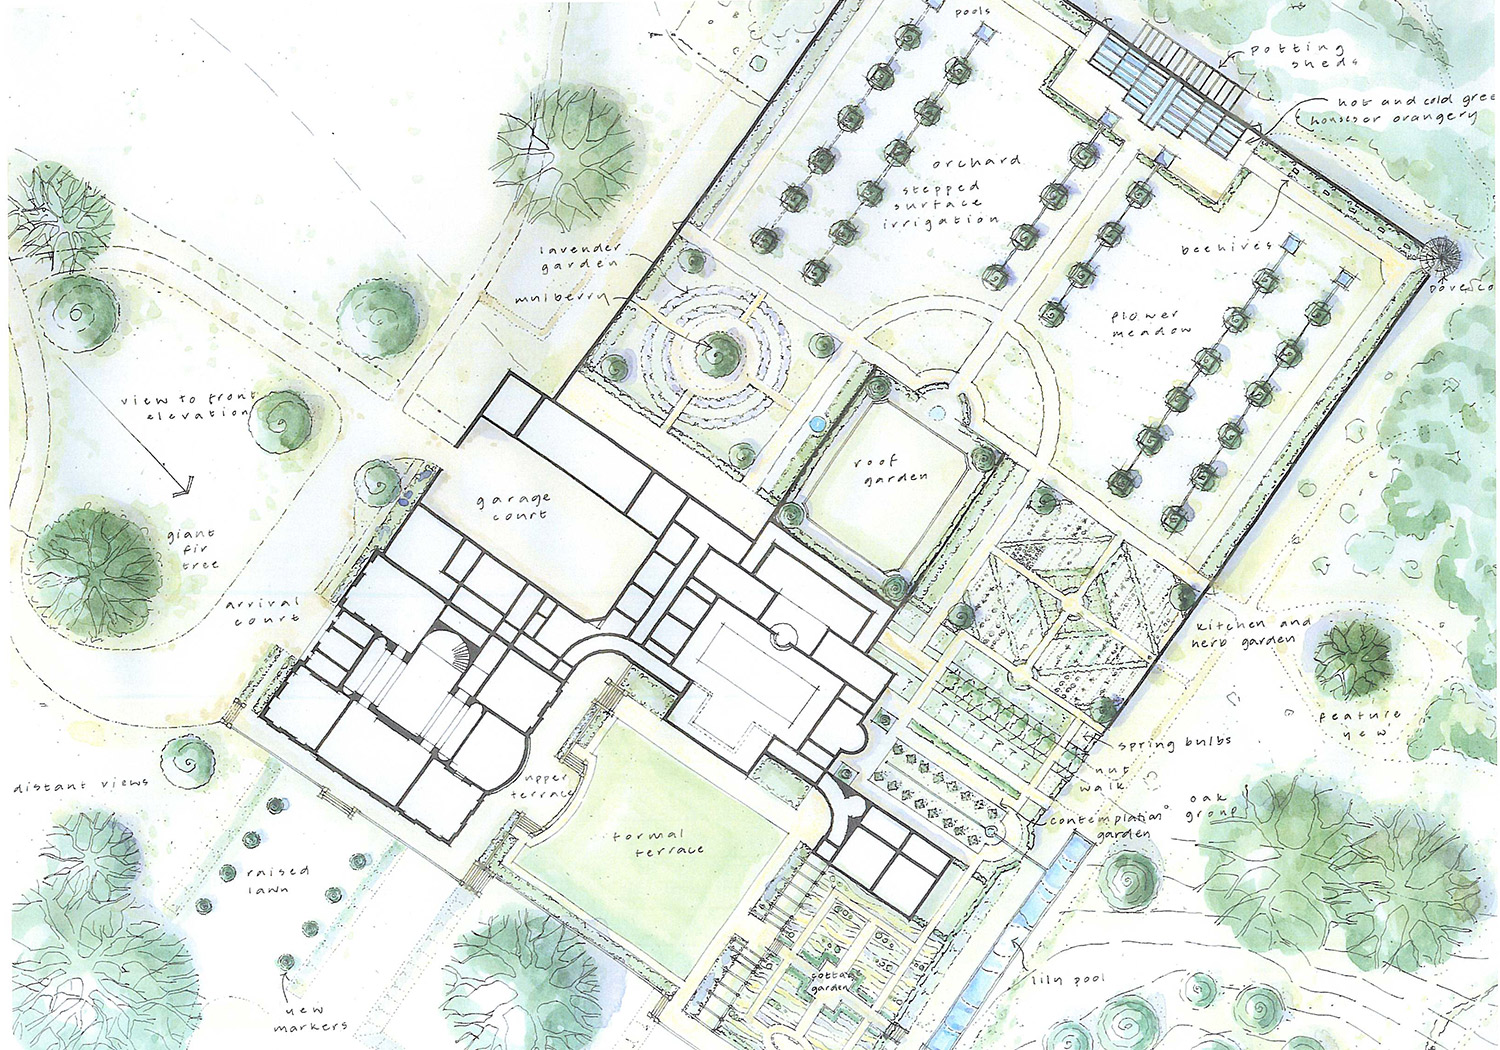 Projects-GardensEstates-NynPark-Concept1-1500x1050